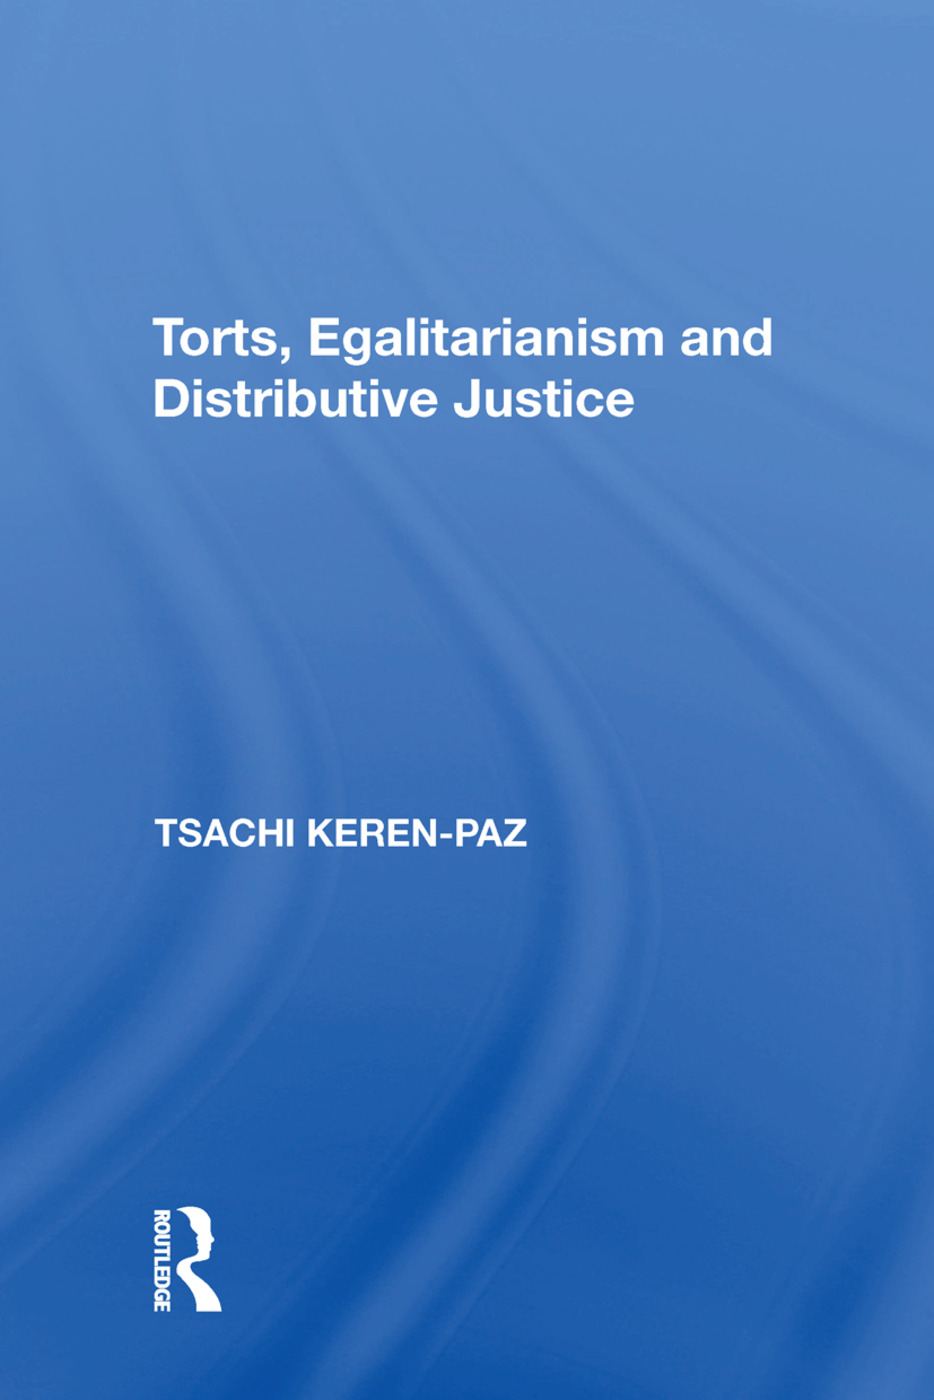 Torts, Egalitarianism and Distributive Justice